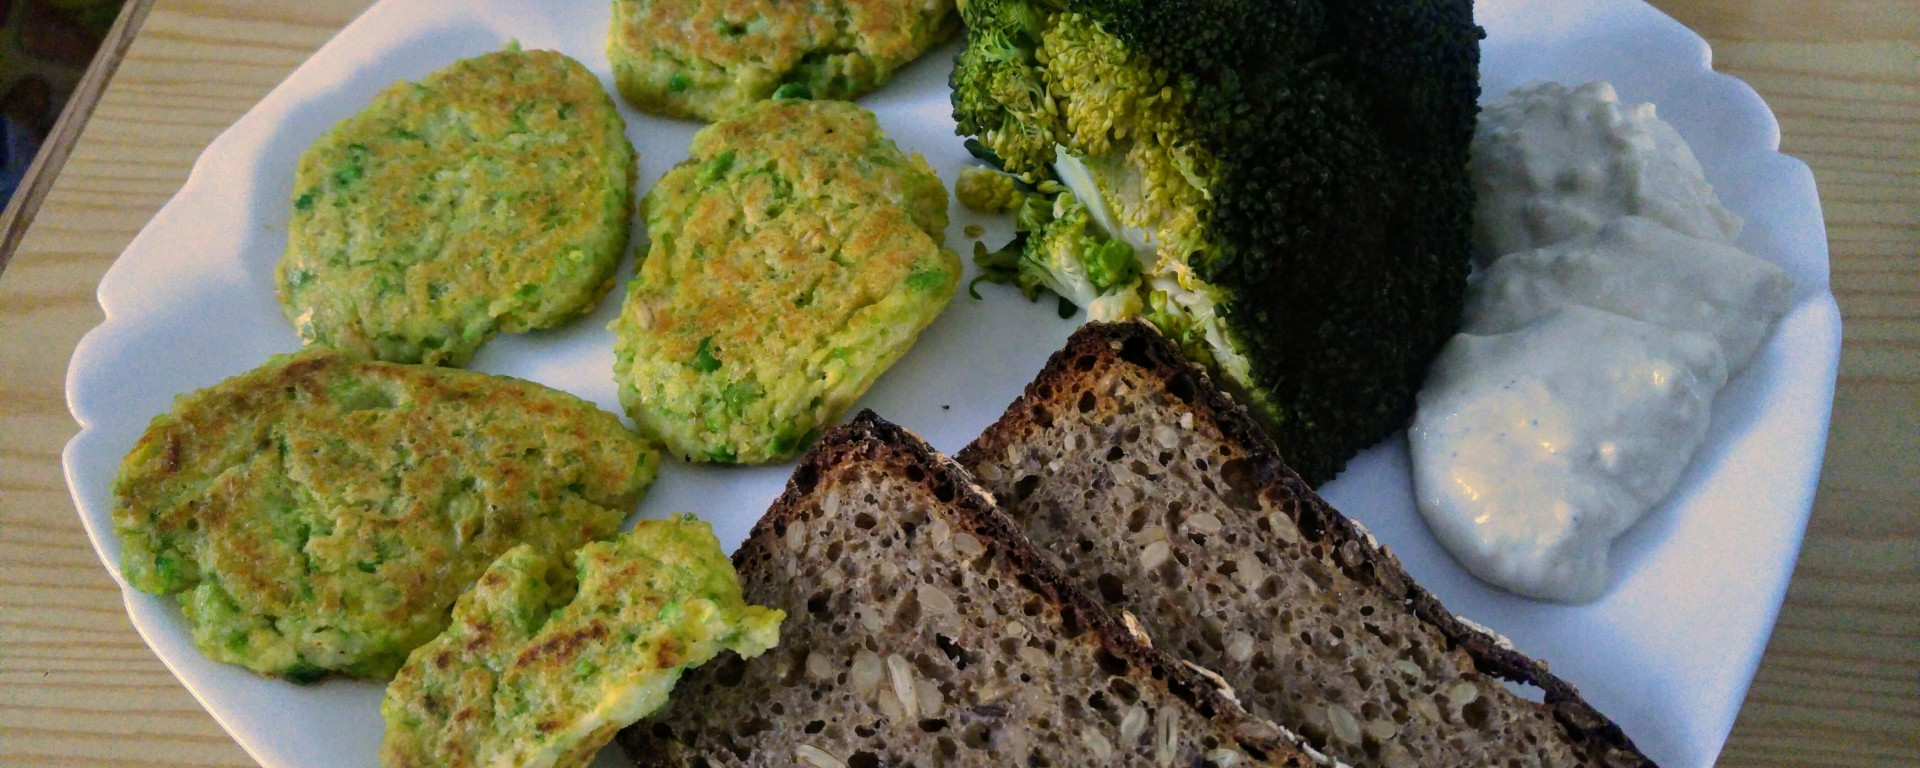 Green peas millet patties on a plate, with broccoli, sourdough bread and garlic sauce